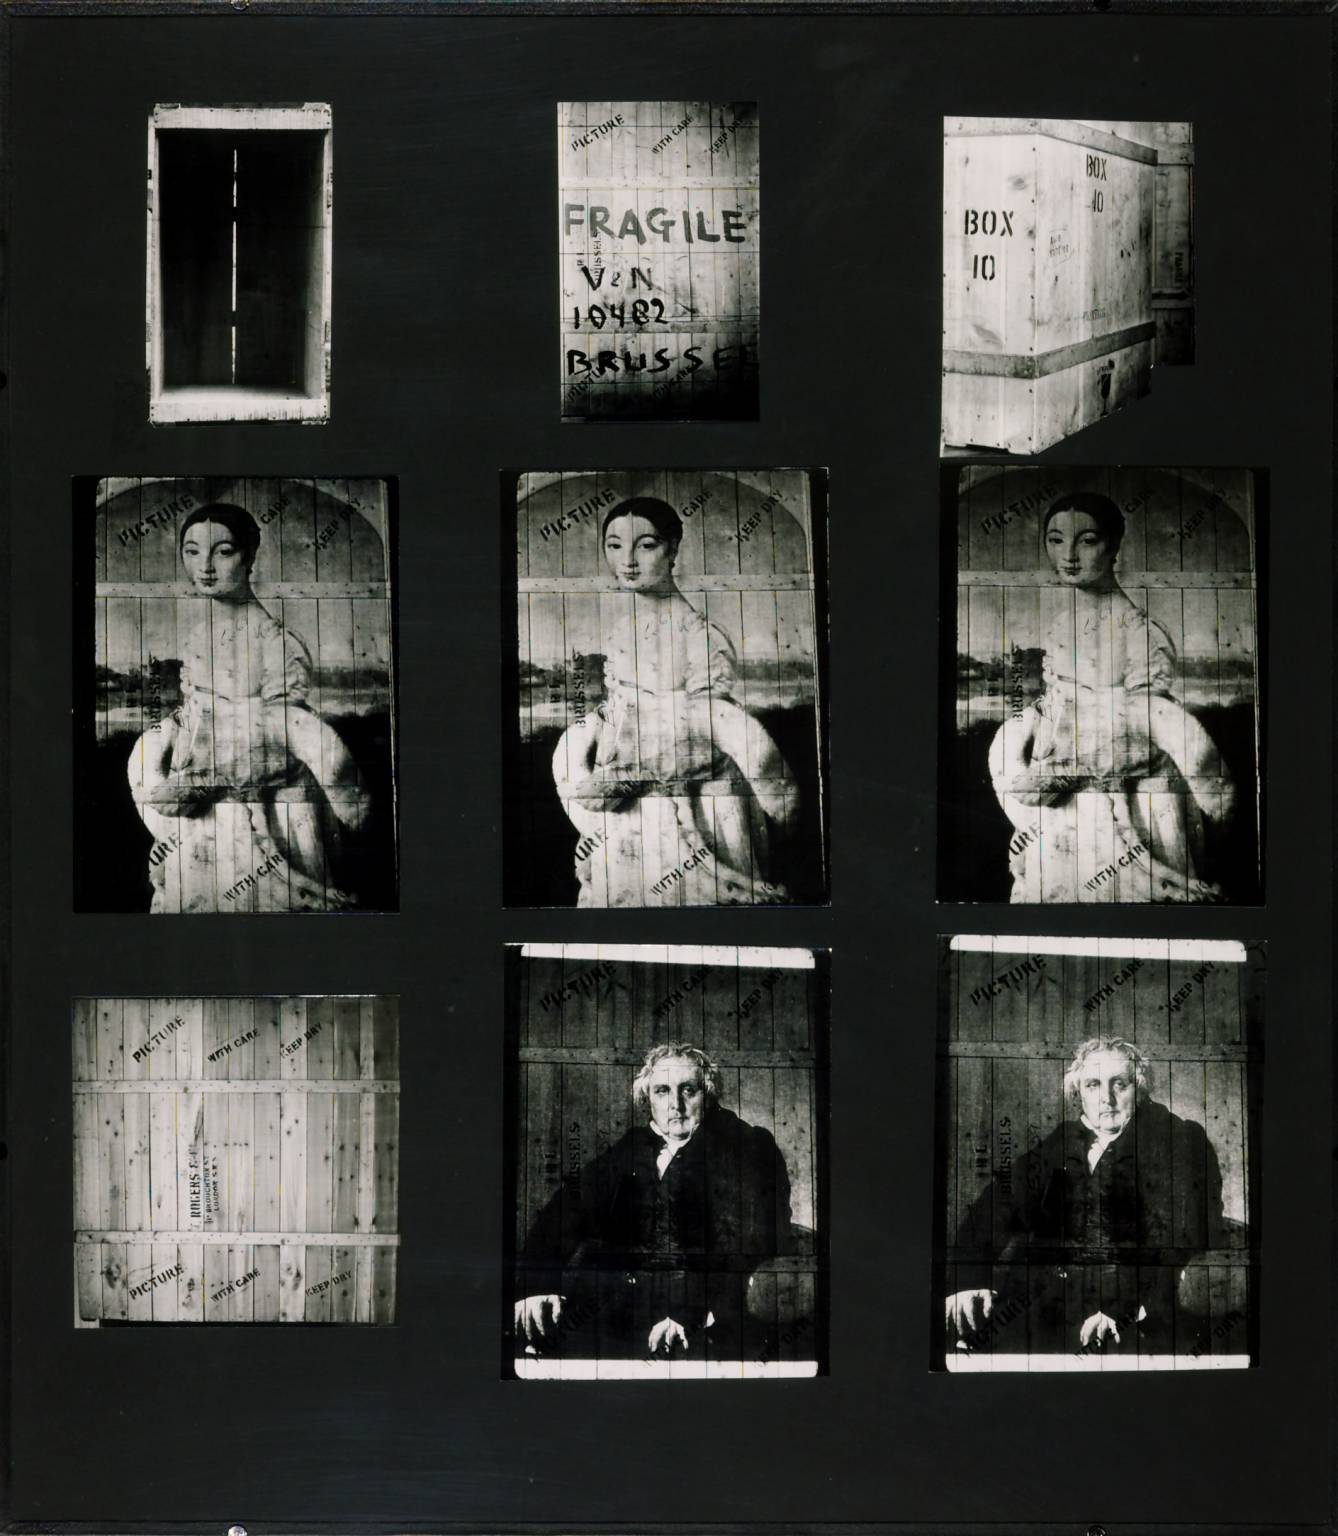 Marcel Broodthaers (1924-1976), 'Mademoiselle Rivière and Monsieur Bertin, 1975, 9 photographs, black and white, on paper on board, 101 x 90,5 x 5,7 cm